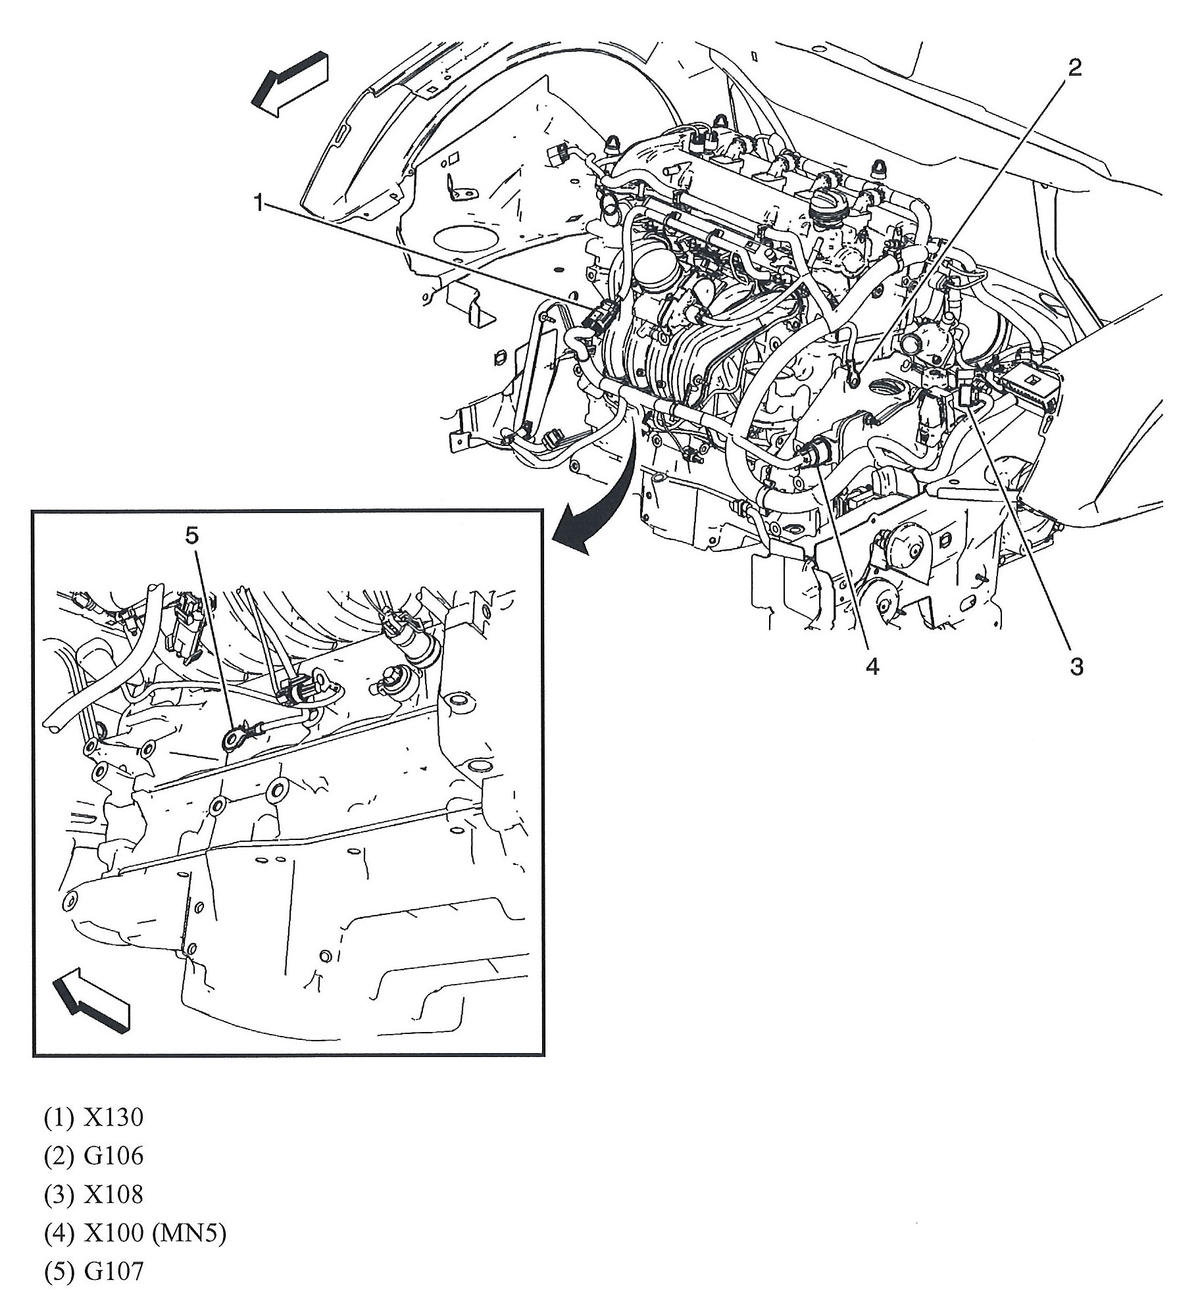 hight resolution of 2000 malibu any diagrams on eletrical connections to sensorsv6 chevy malibu v6 engine diagram